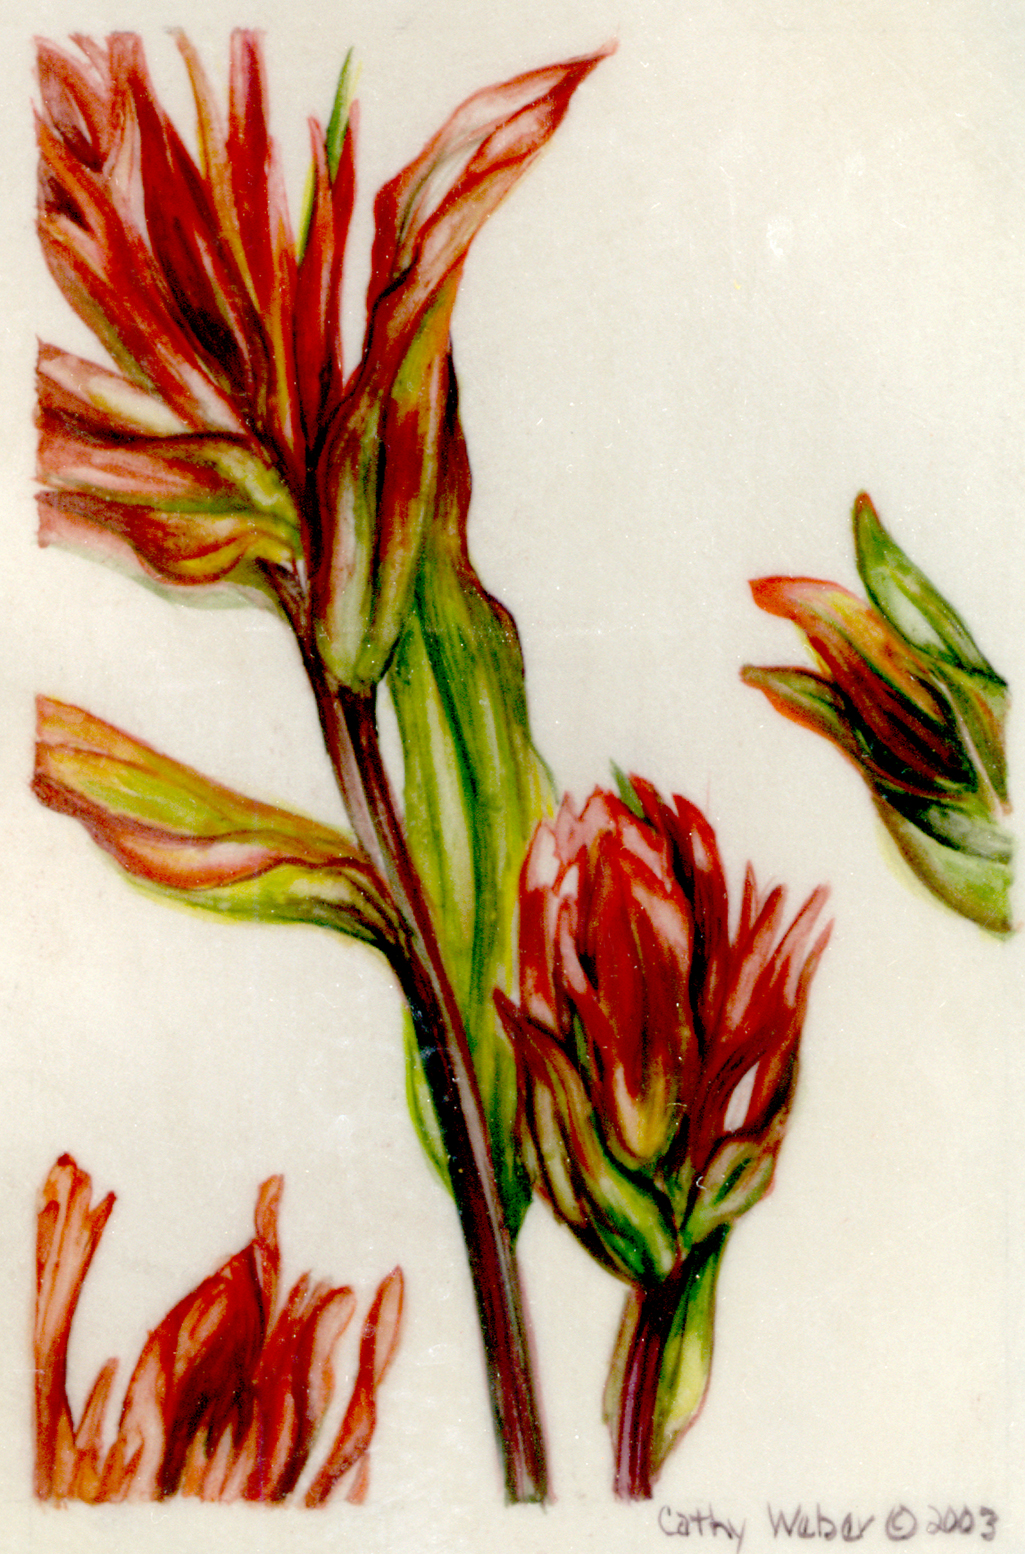 cathy weber - art - painting - woman -flowers - watercolor - moon phase- montana - painting - parchment - skin - botanical - study - wildflower - indian paintbrush